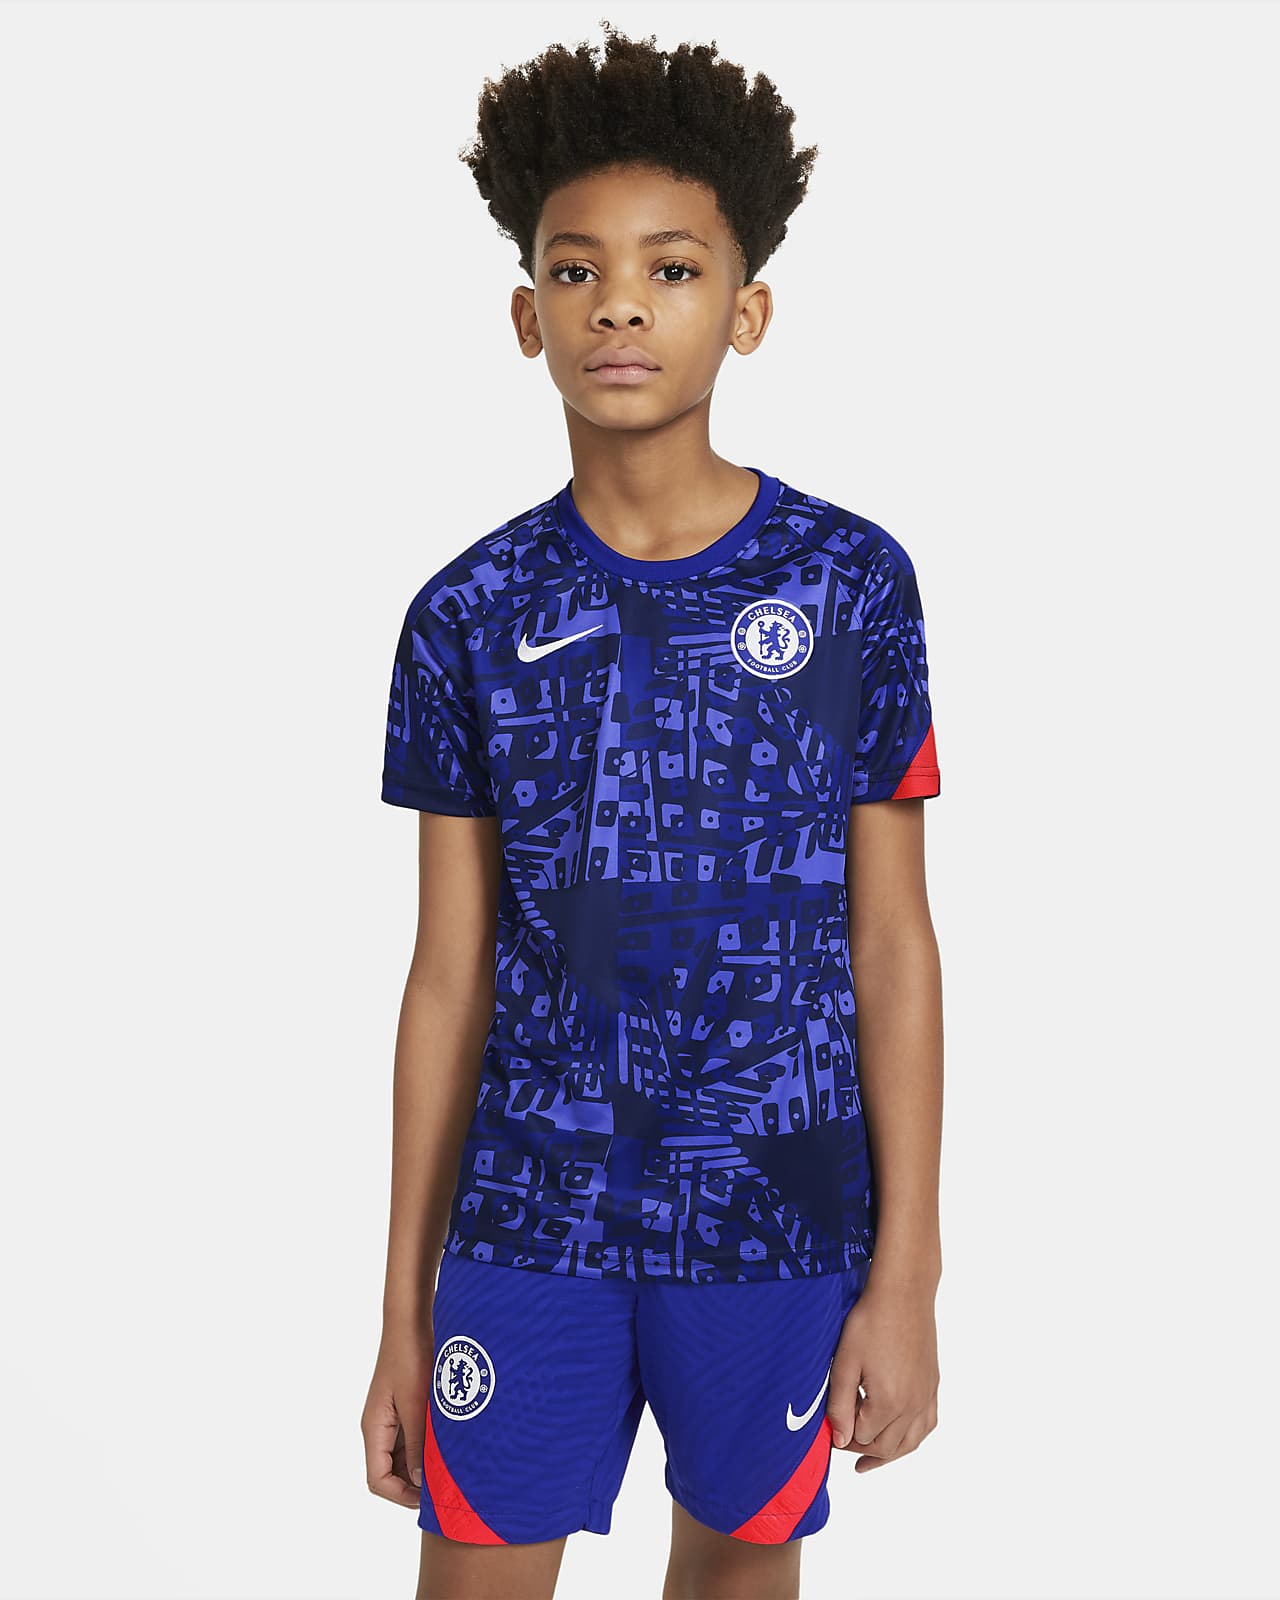 Chelsea F.C. Older Kids' Pre-Match Short-Sleeve Football Top